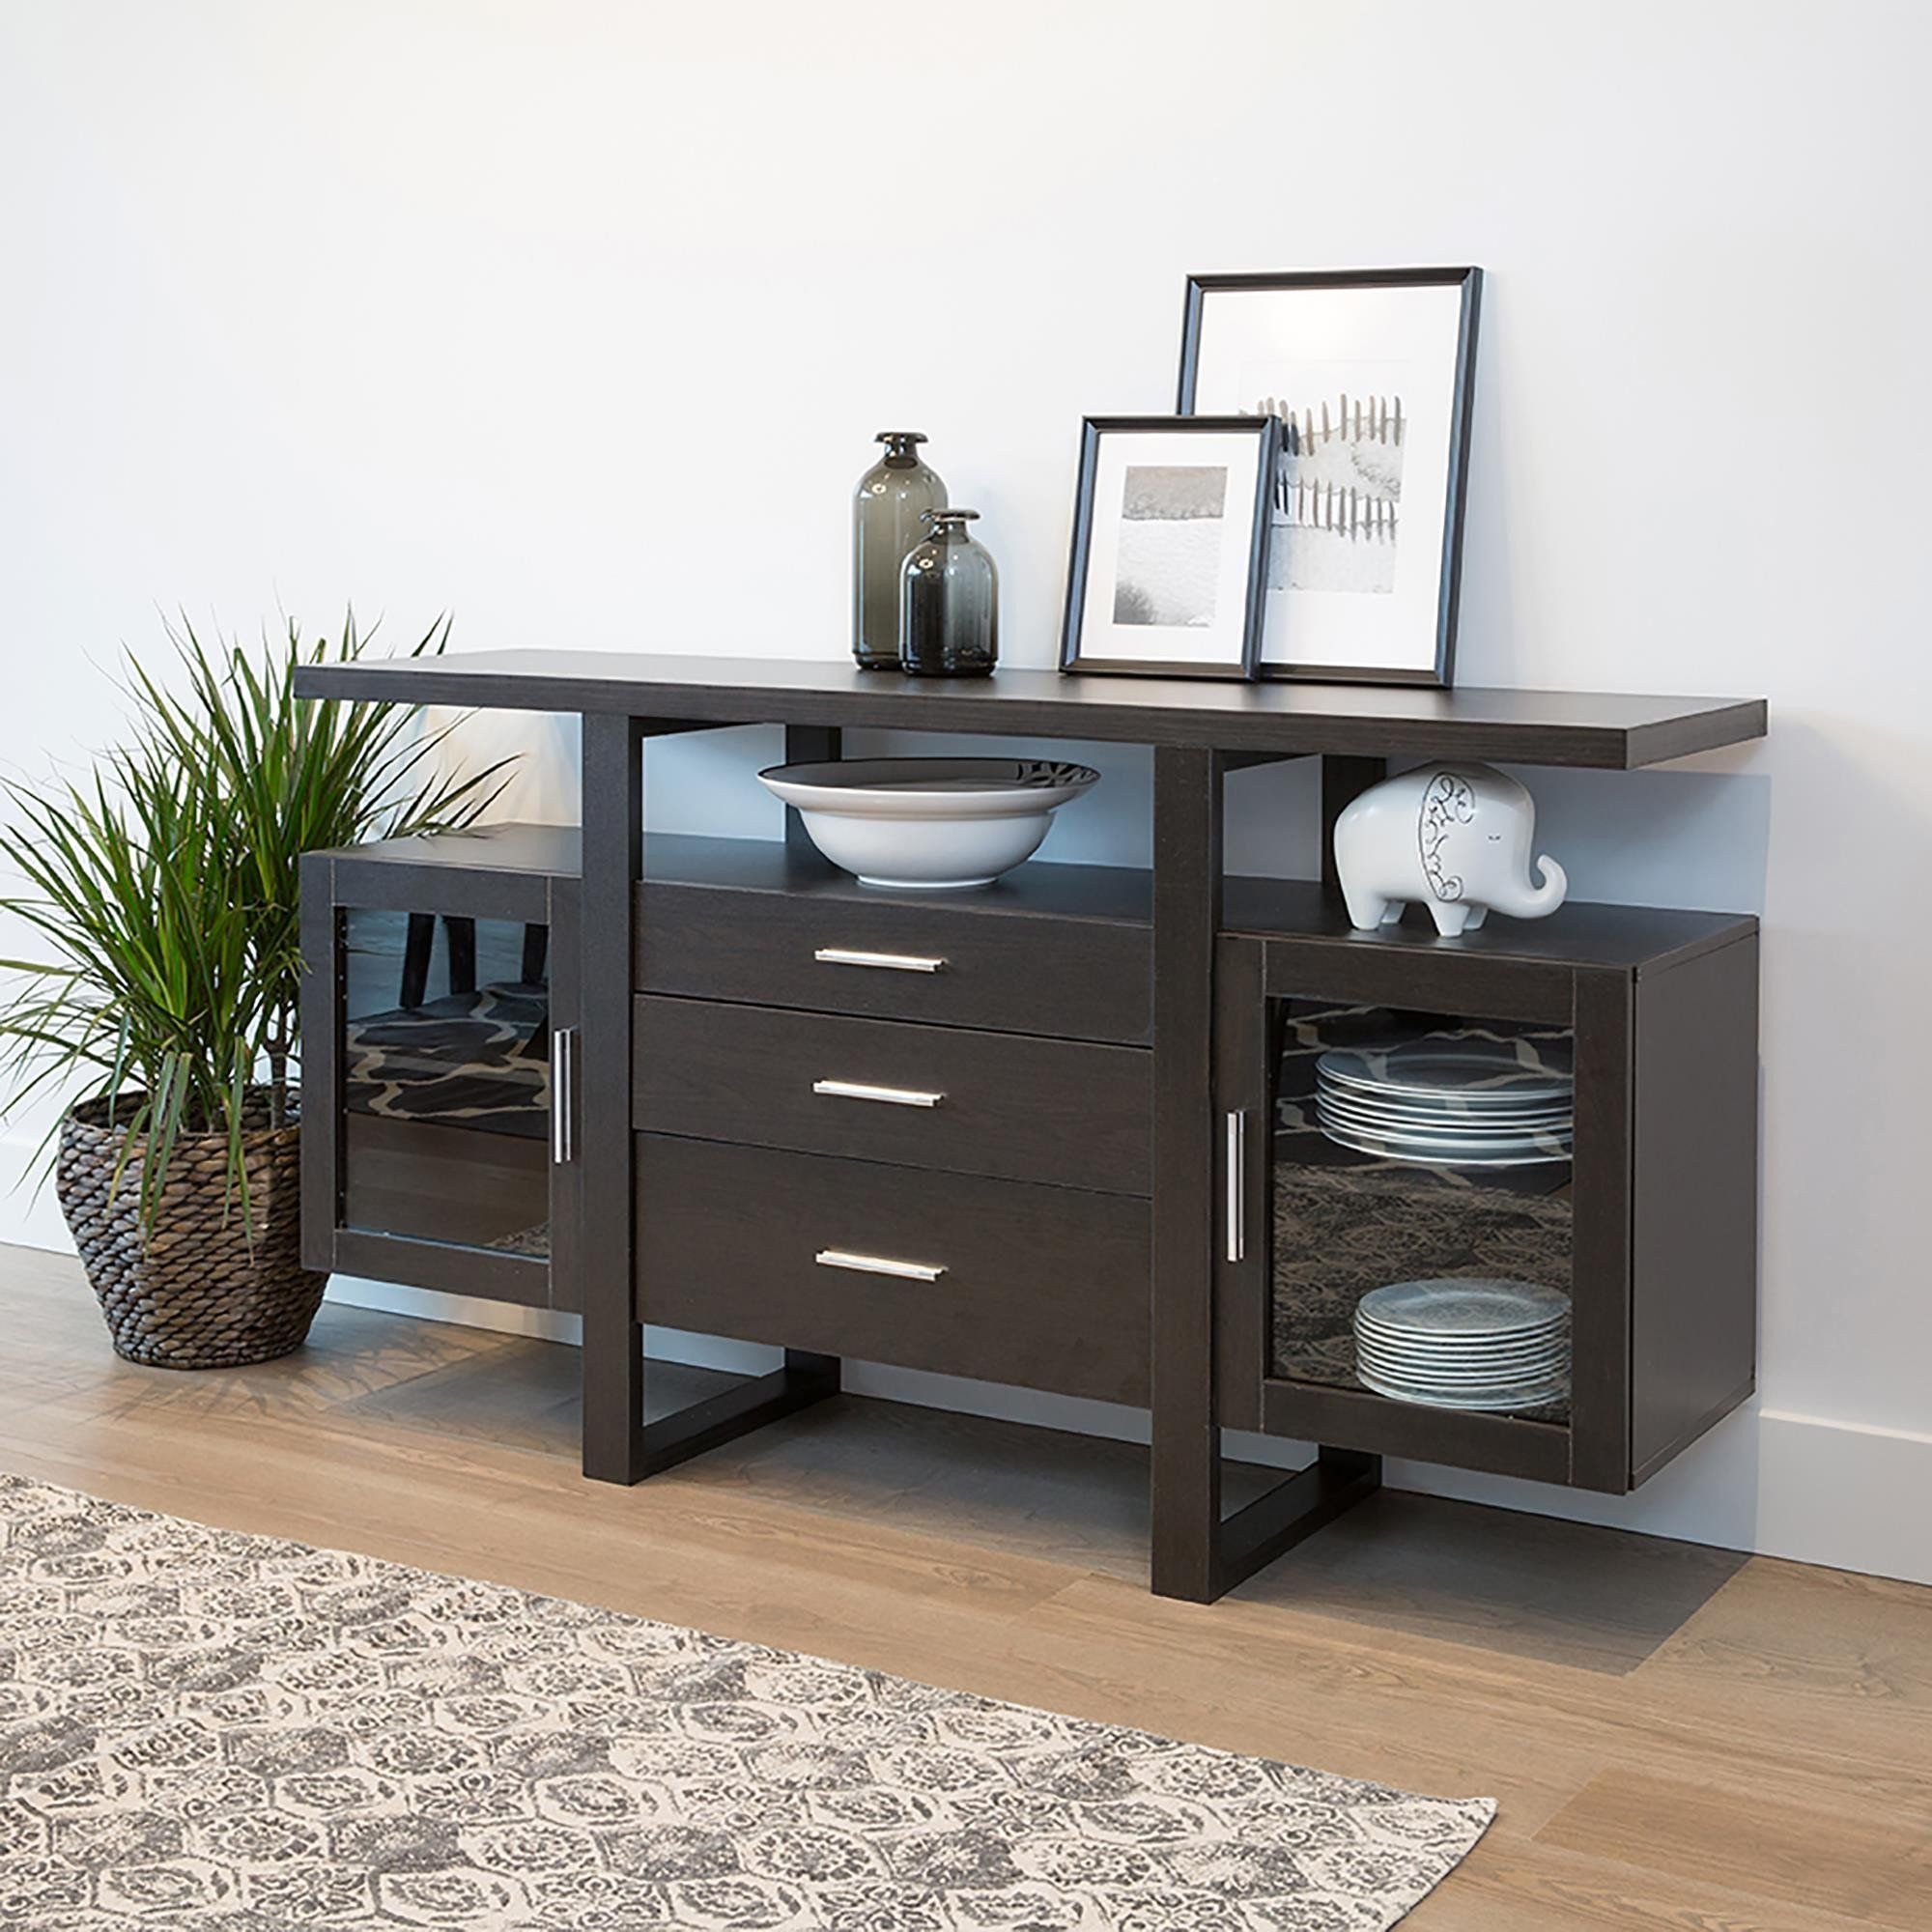 Sideboard Buffet Espresso Ksp Madrid Buffet Server Espresso Available For Sale At The Best